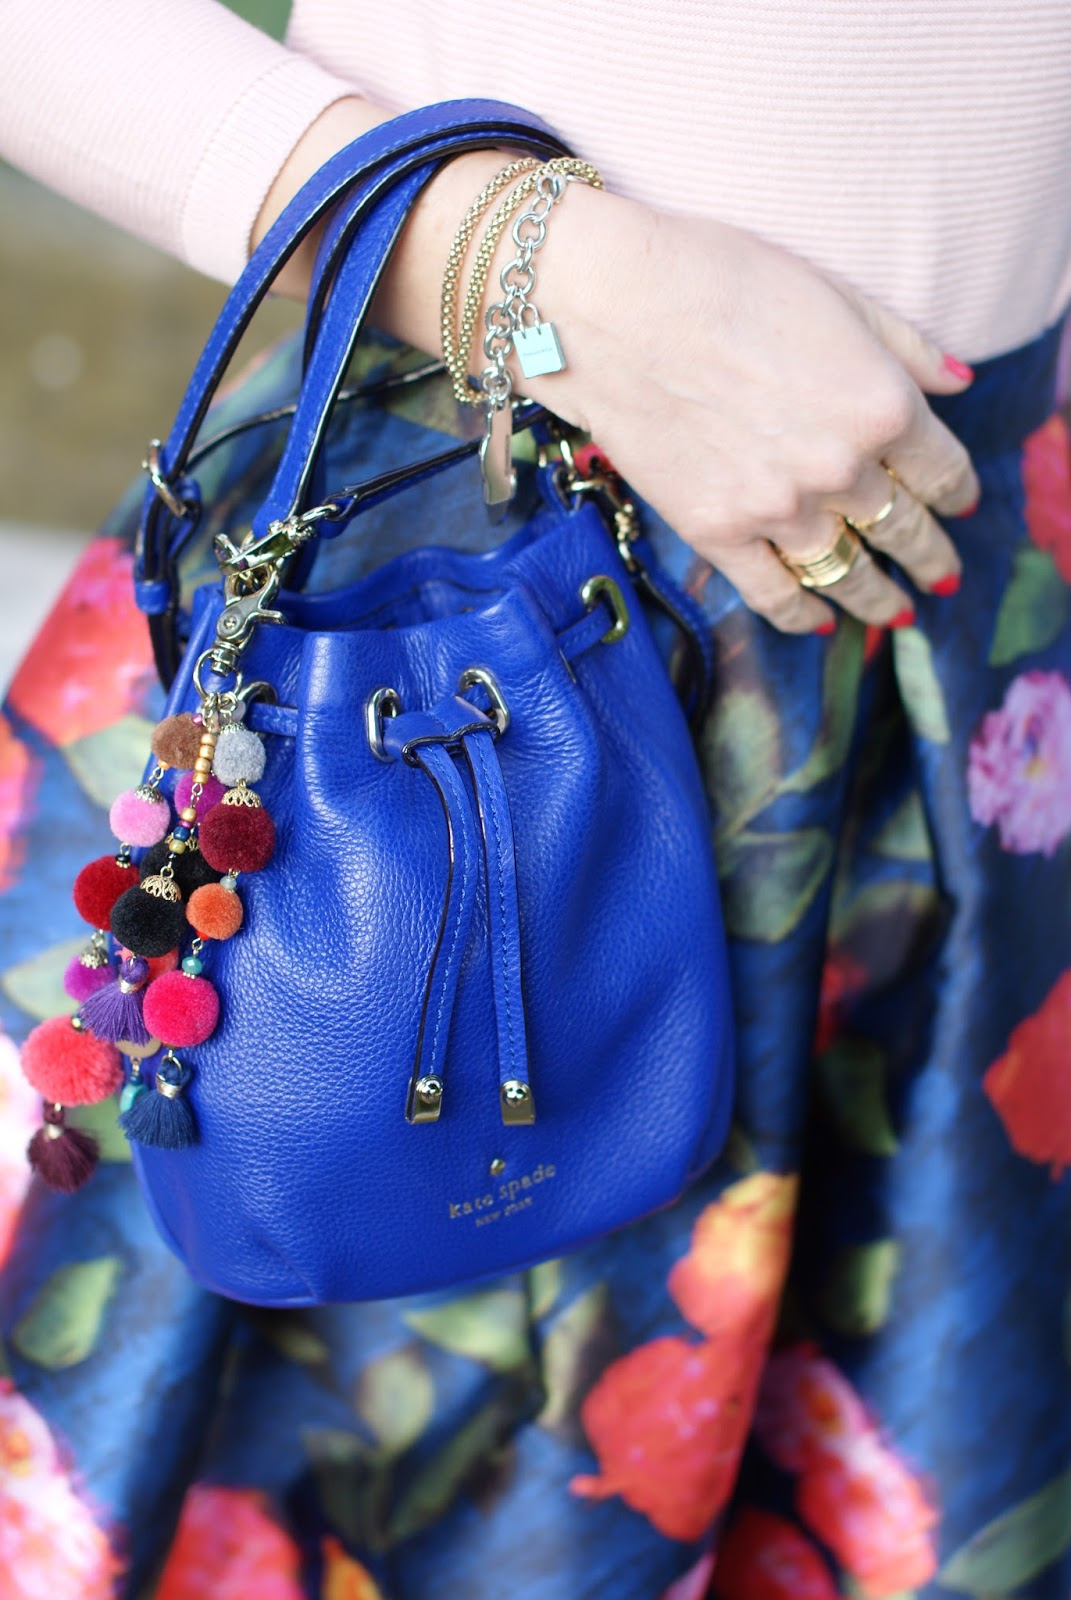 Kate Spade New York bucket bag on Fashion and Cookies fashion blog, fashion blogger style